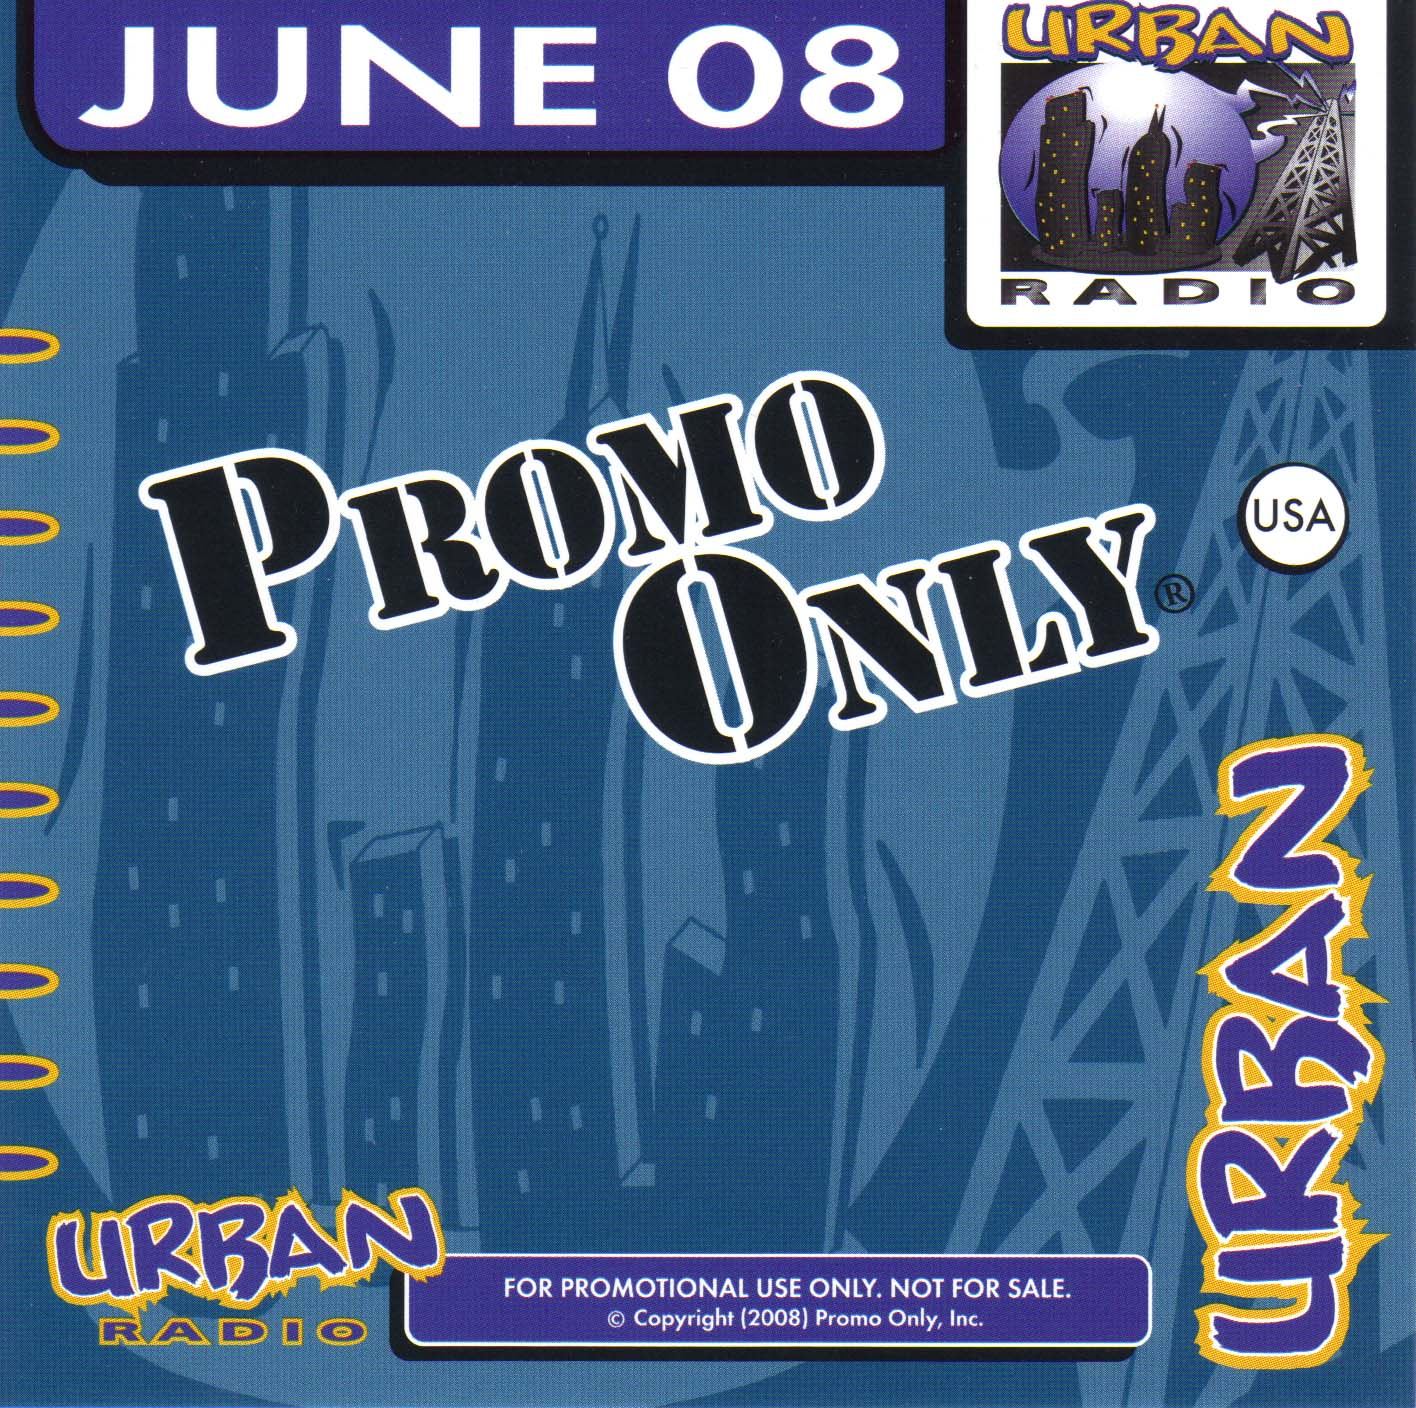 00 va promo only urban radio june 2008 front